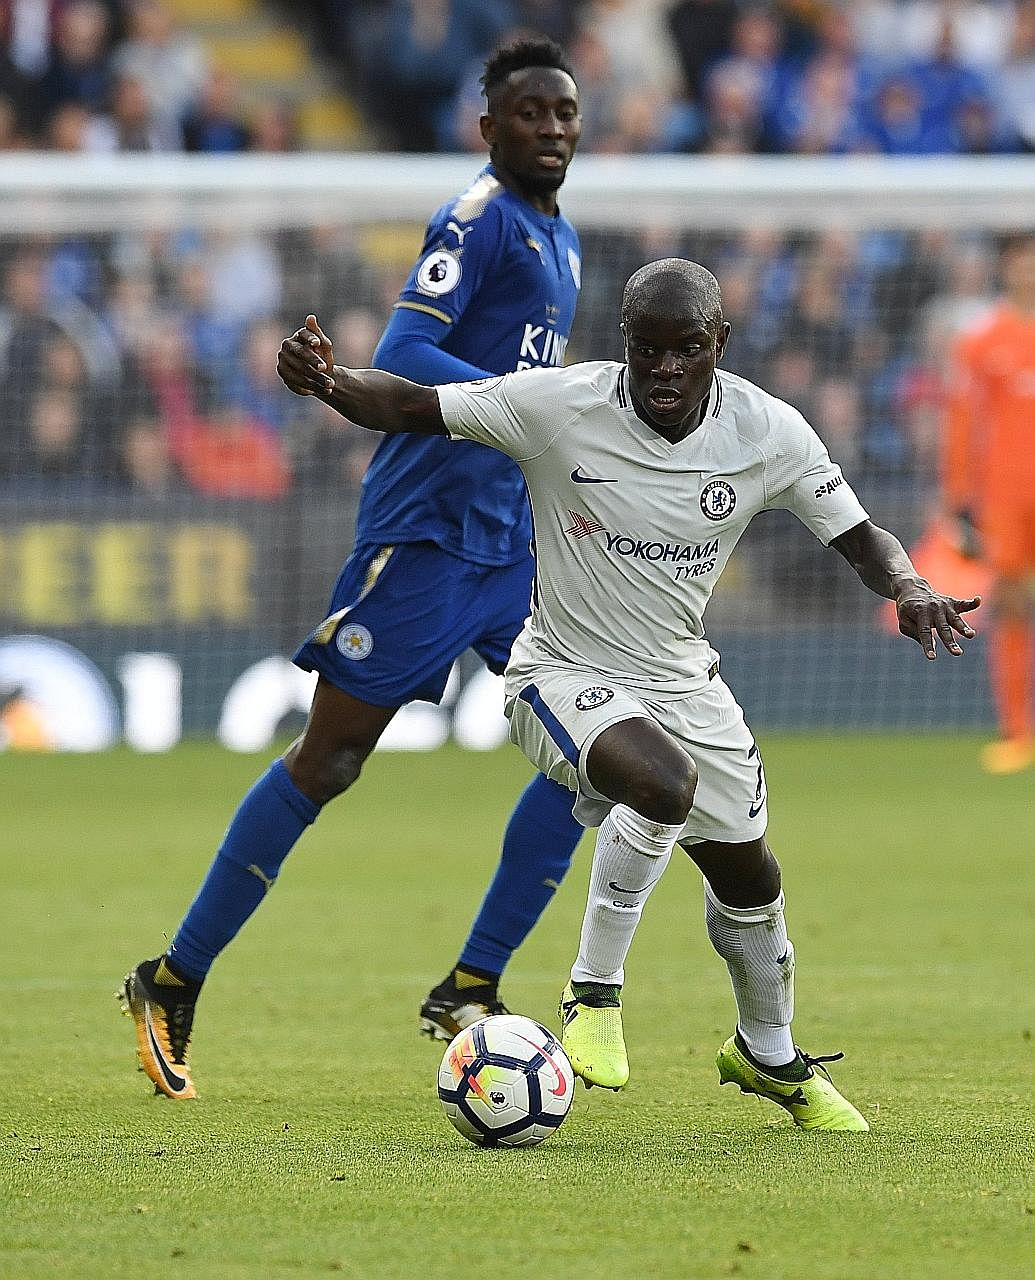 Chelsea's N'Golo Kante holding off Leicester's Nigerian player Wilfred Ndidi during their Premier League game. The France midfielder is going for a hat-trick of Premier League titles, having won the last two with the Blues and the Foxes.